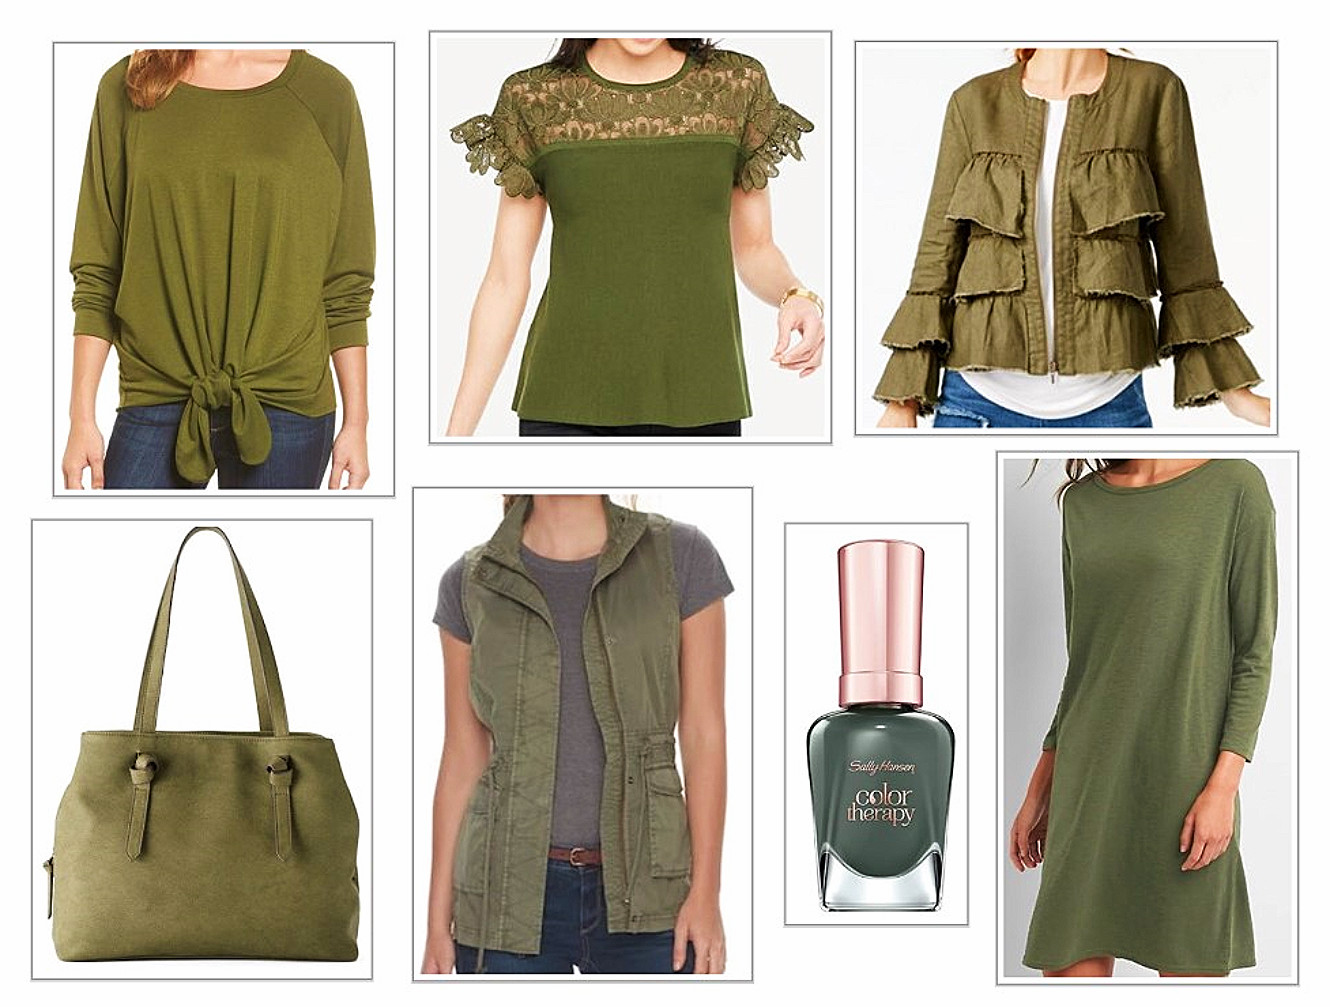 Fashions In Spruce Green